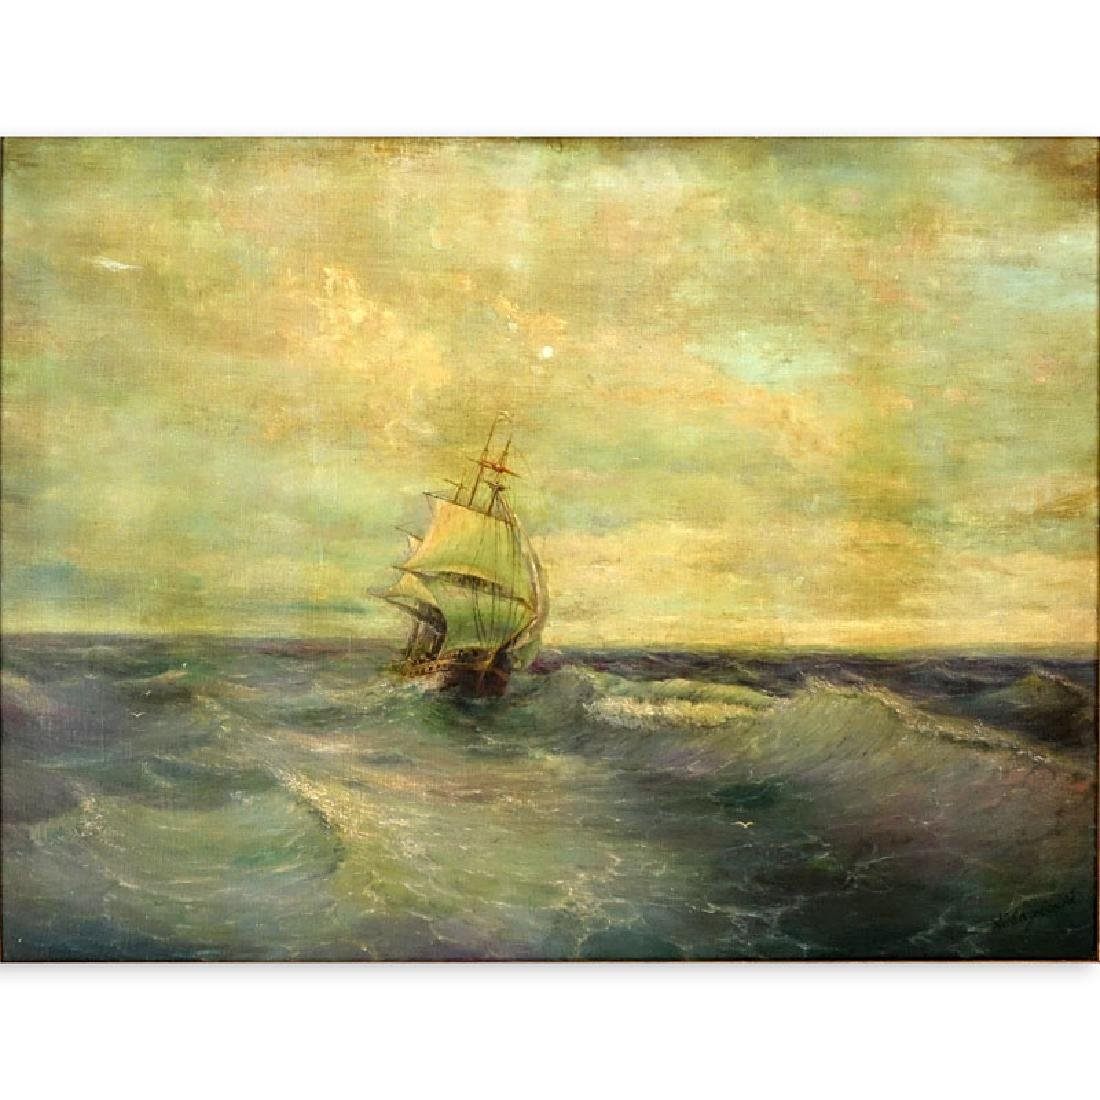 Attributed to: Ivan Konstantinovich Aivazovsky, Russian